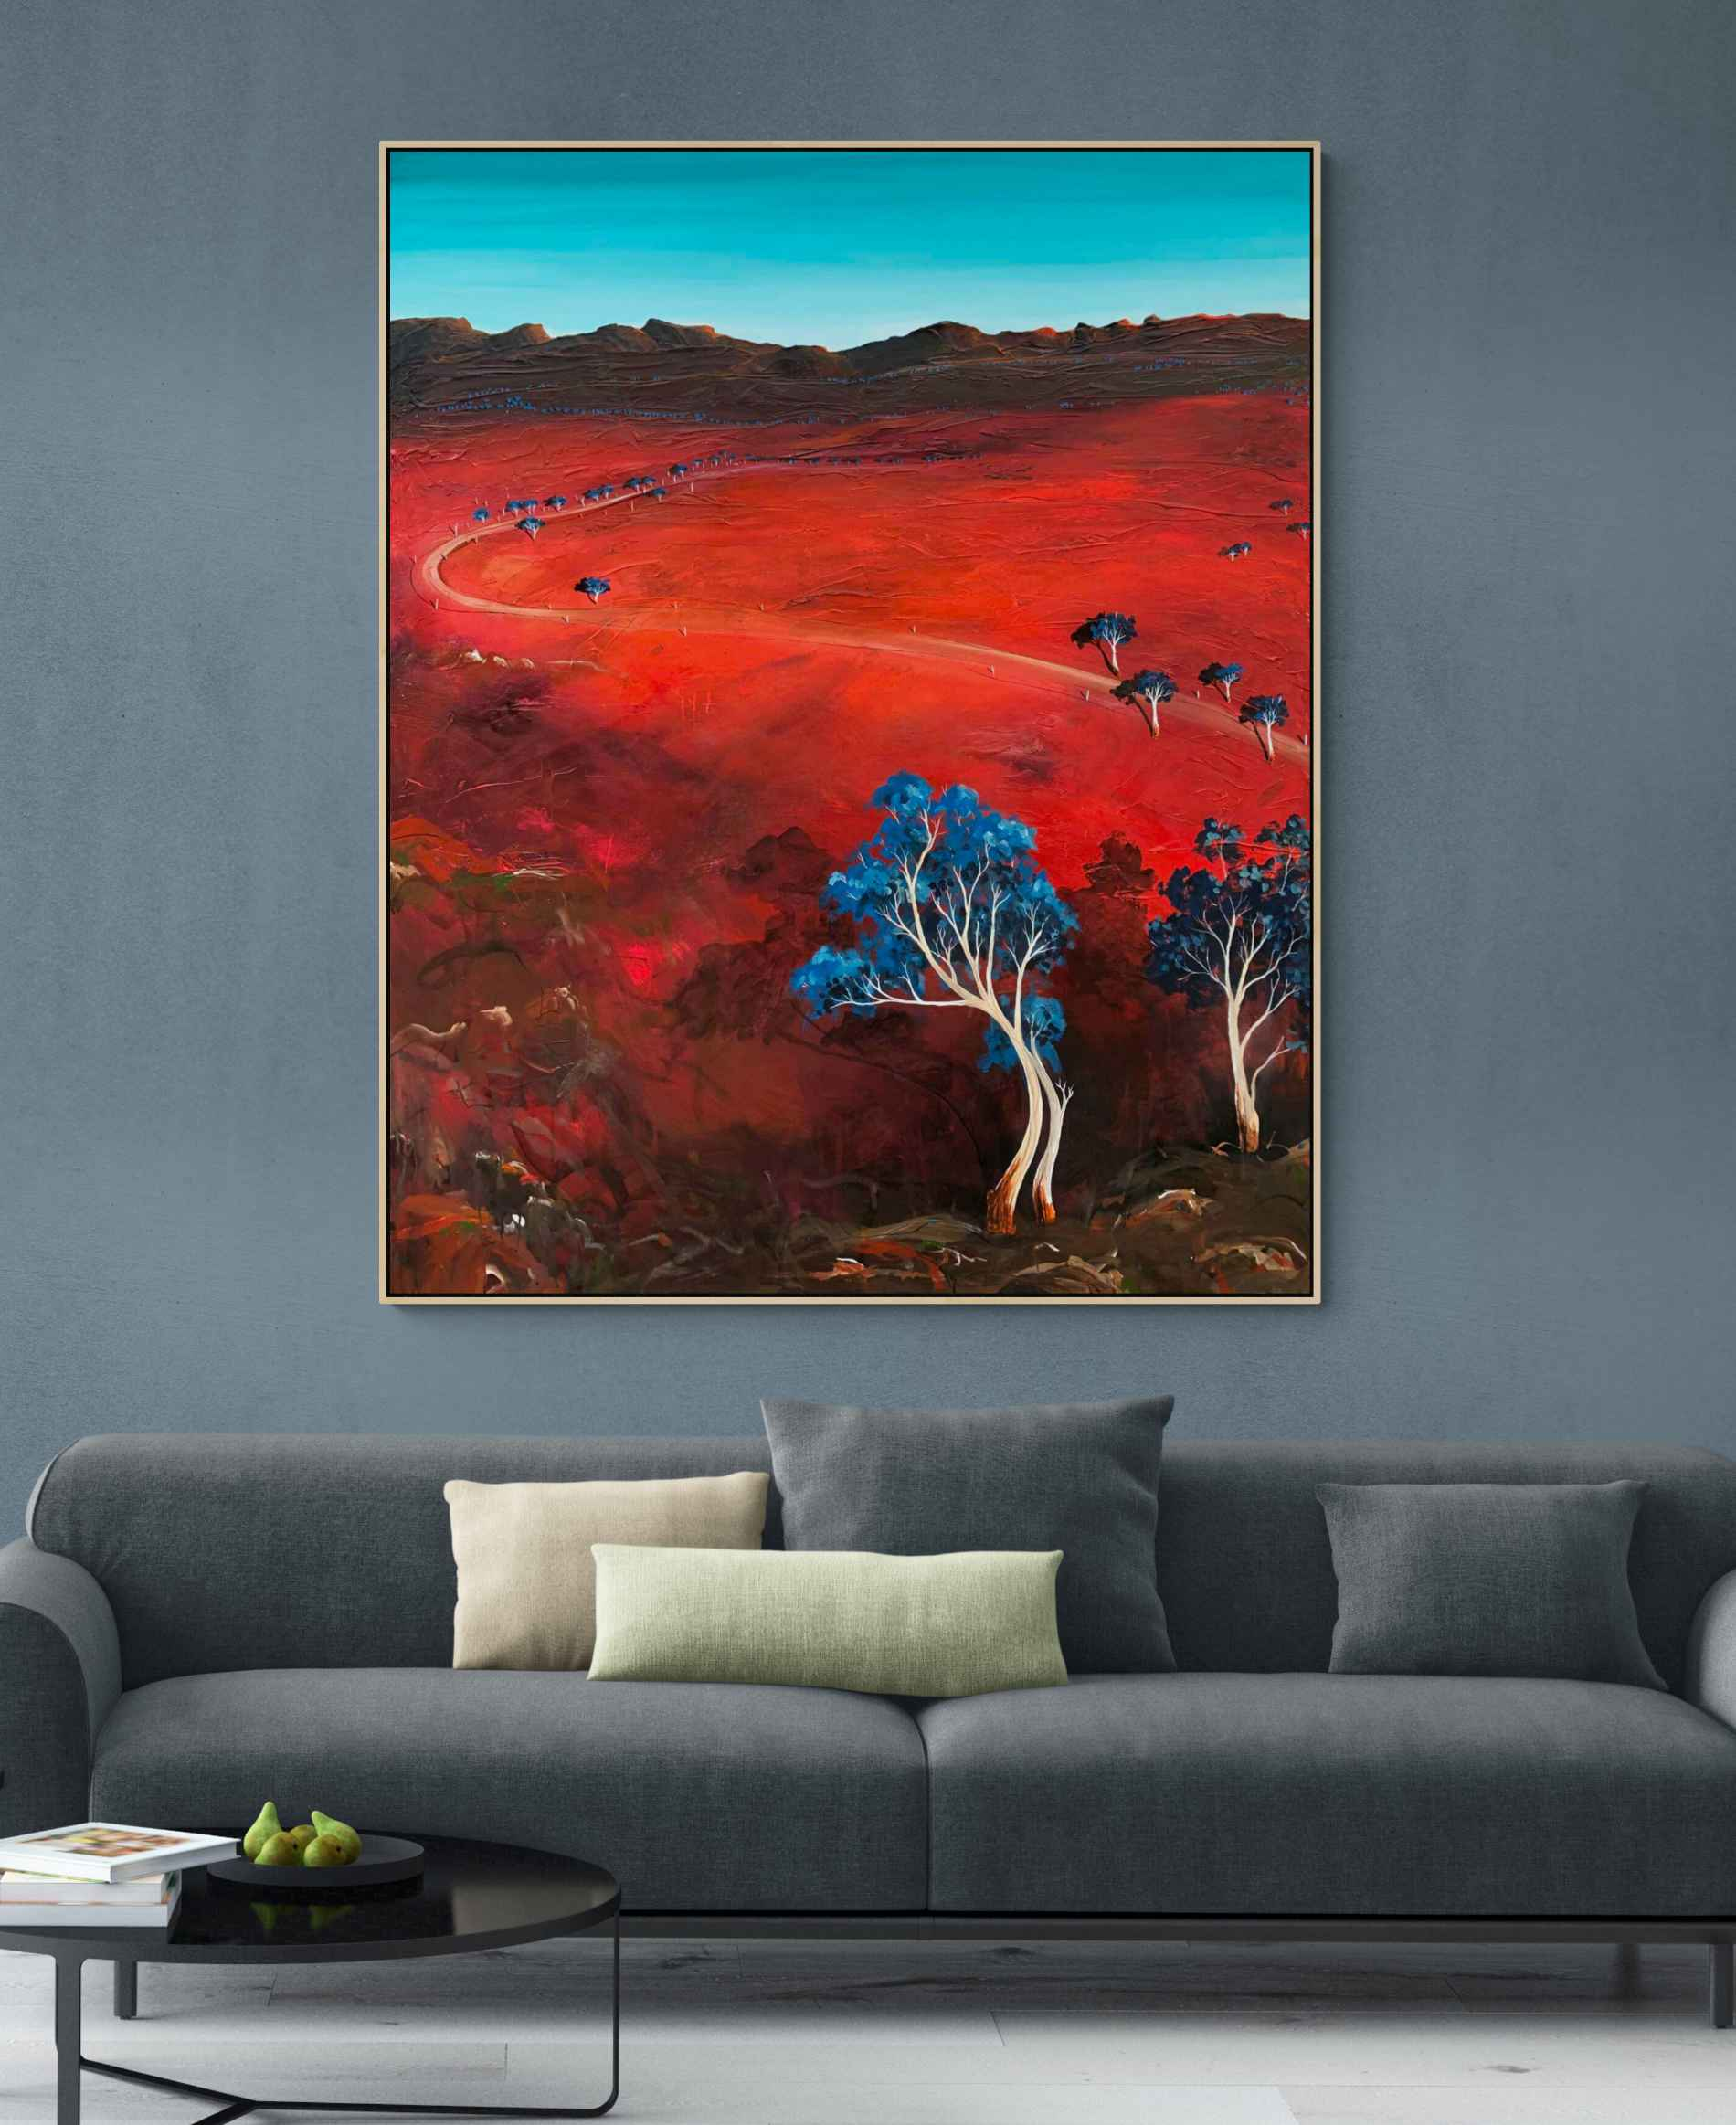 Tania Chanter The Scorched Red Earth Large Landscape